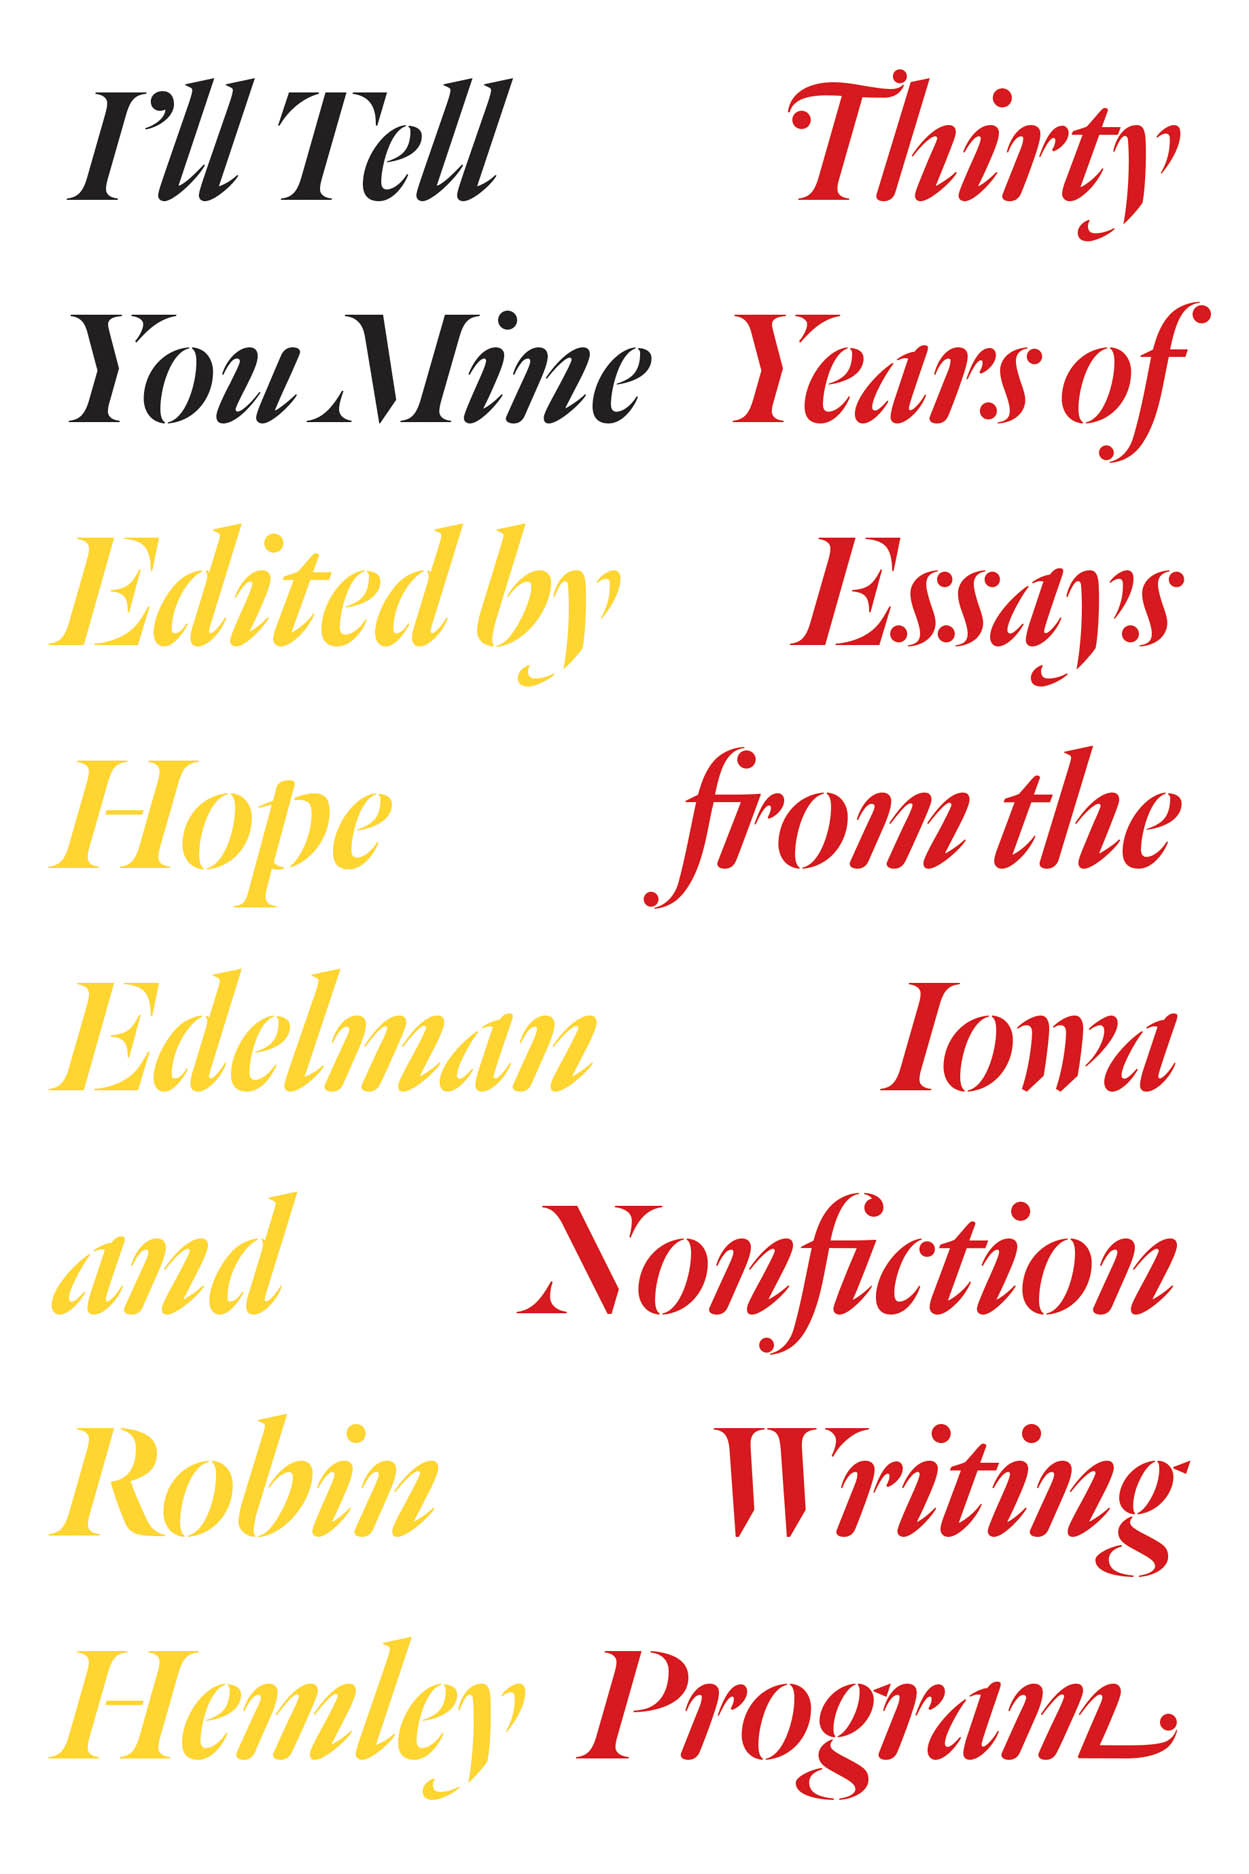 i ll tell you mine thirty years of essays from the iowa  i ll tell you mine